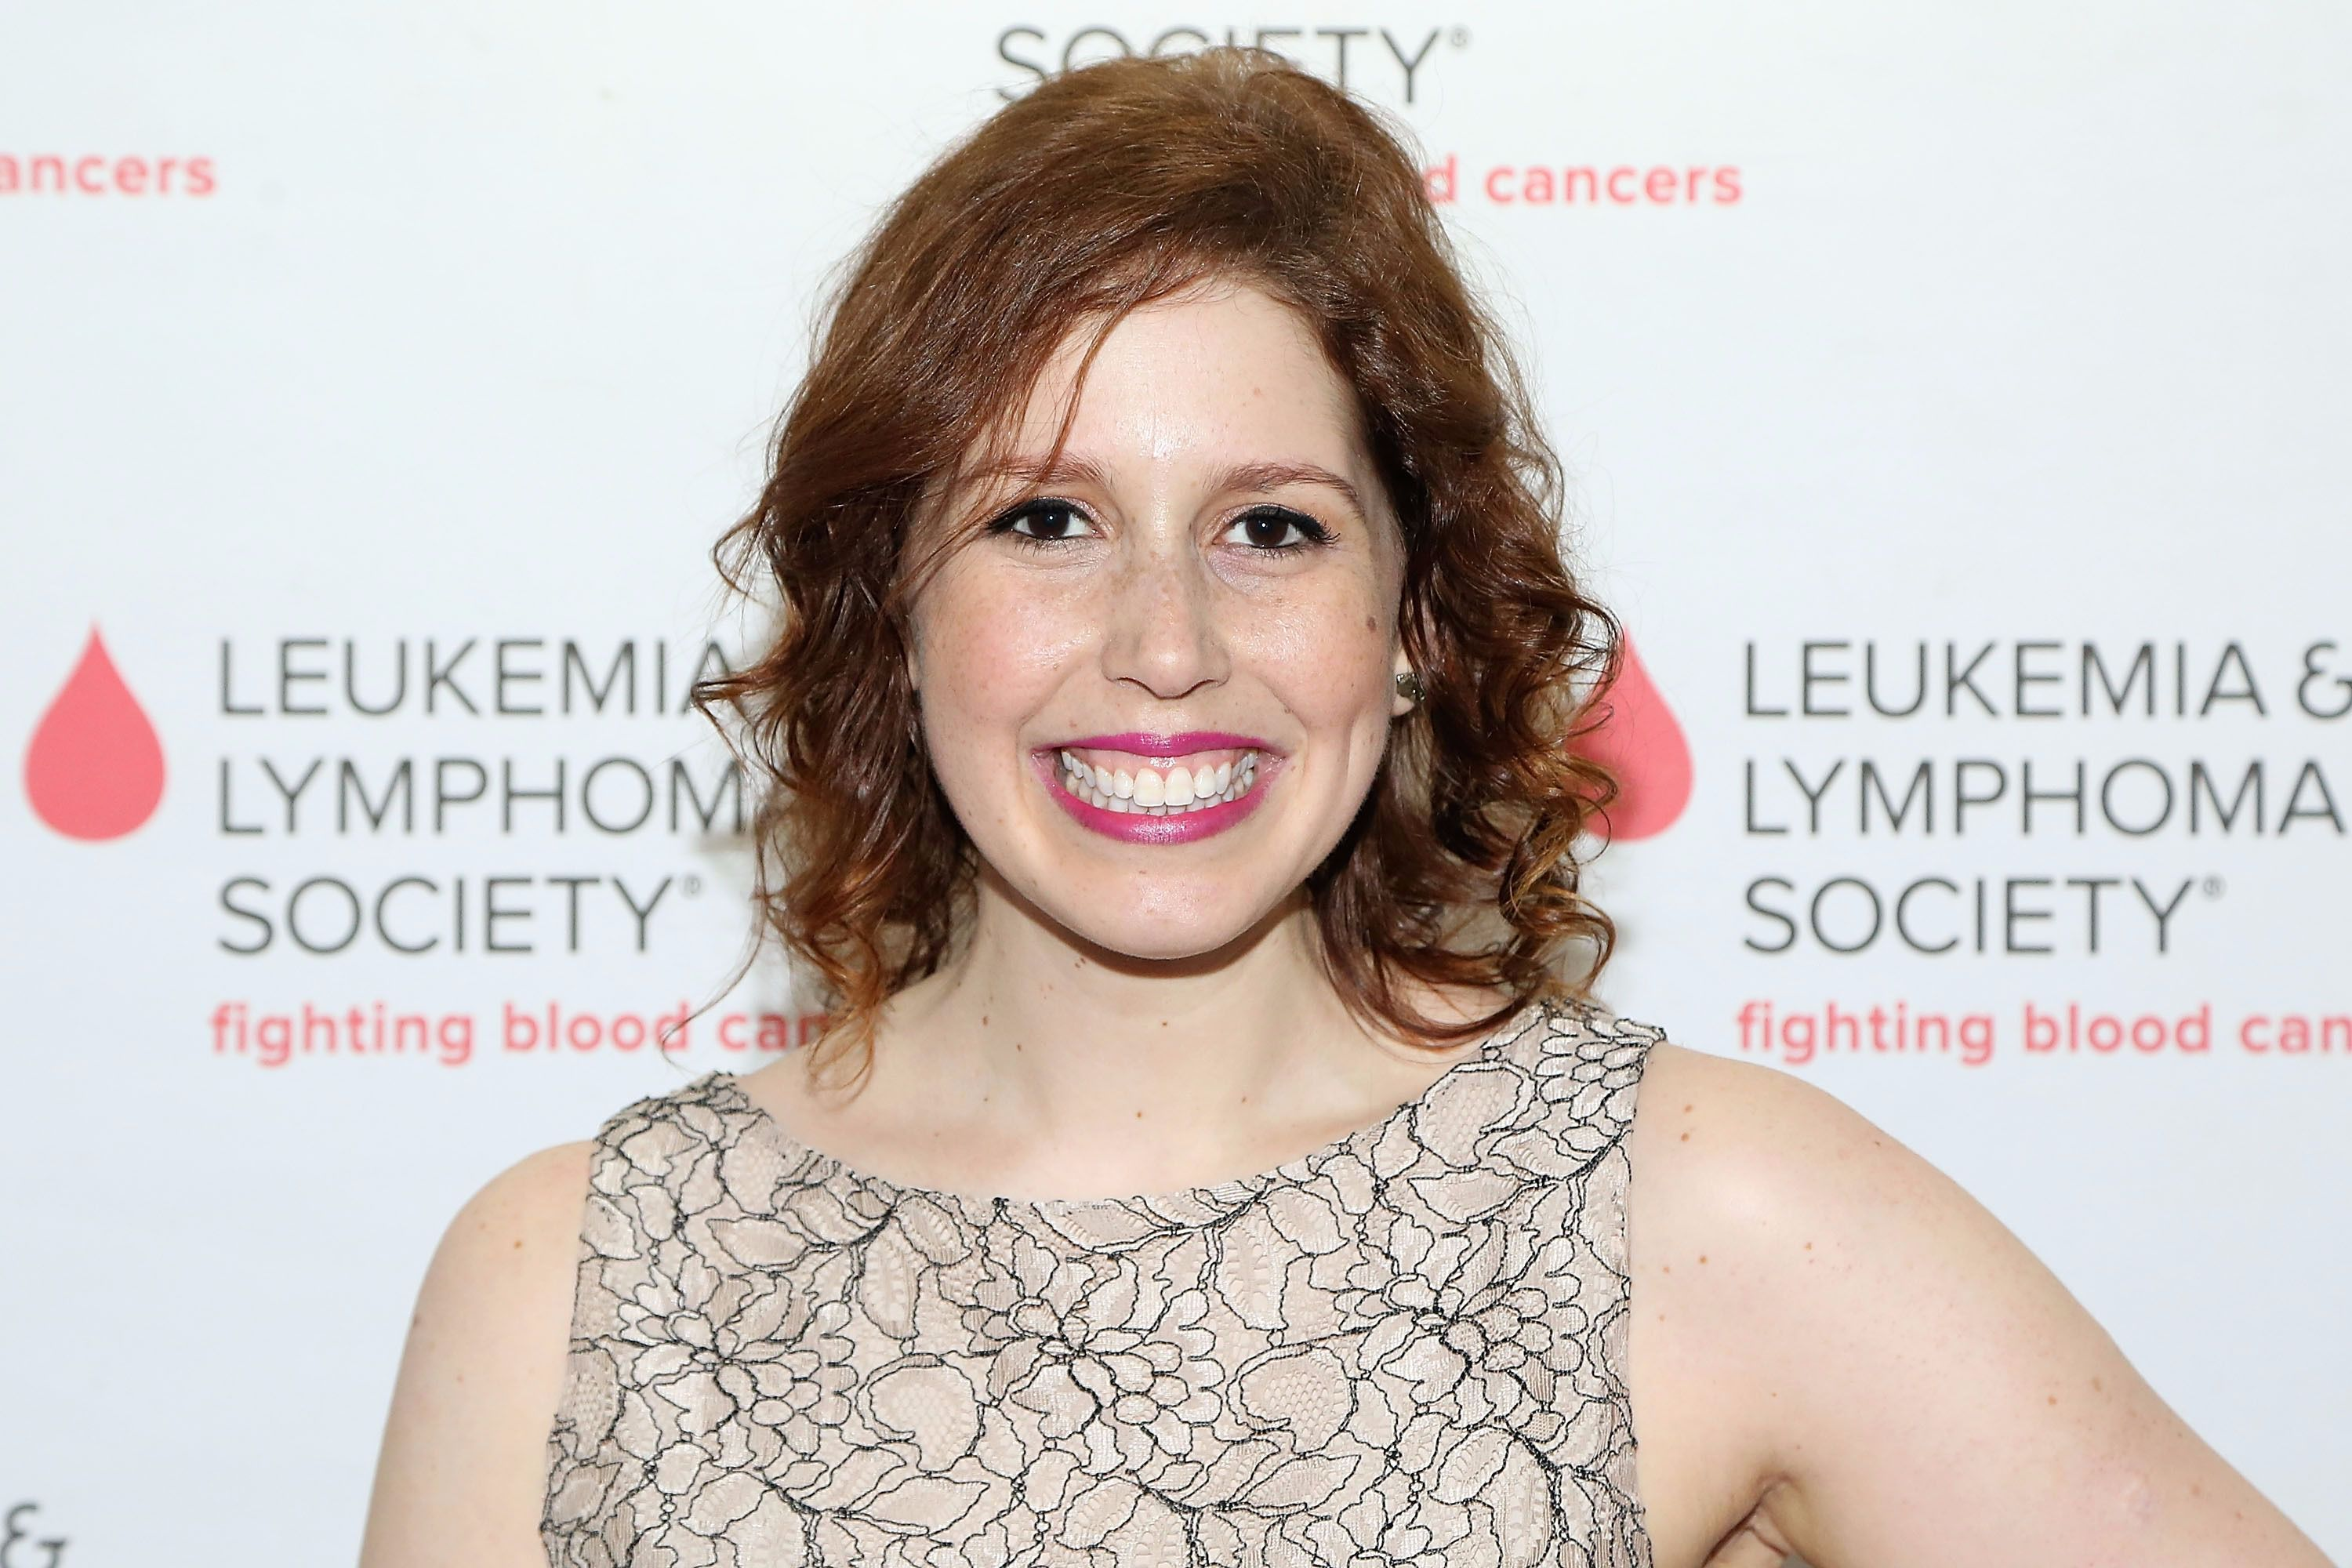 Meet SNLs Vanessa Bayer AKA Jacob The Bar Mitzvah Boy The Forward - Comedian absolutely nails celebrity impressions